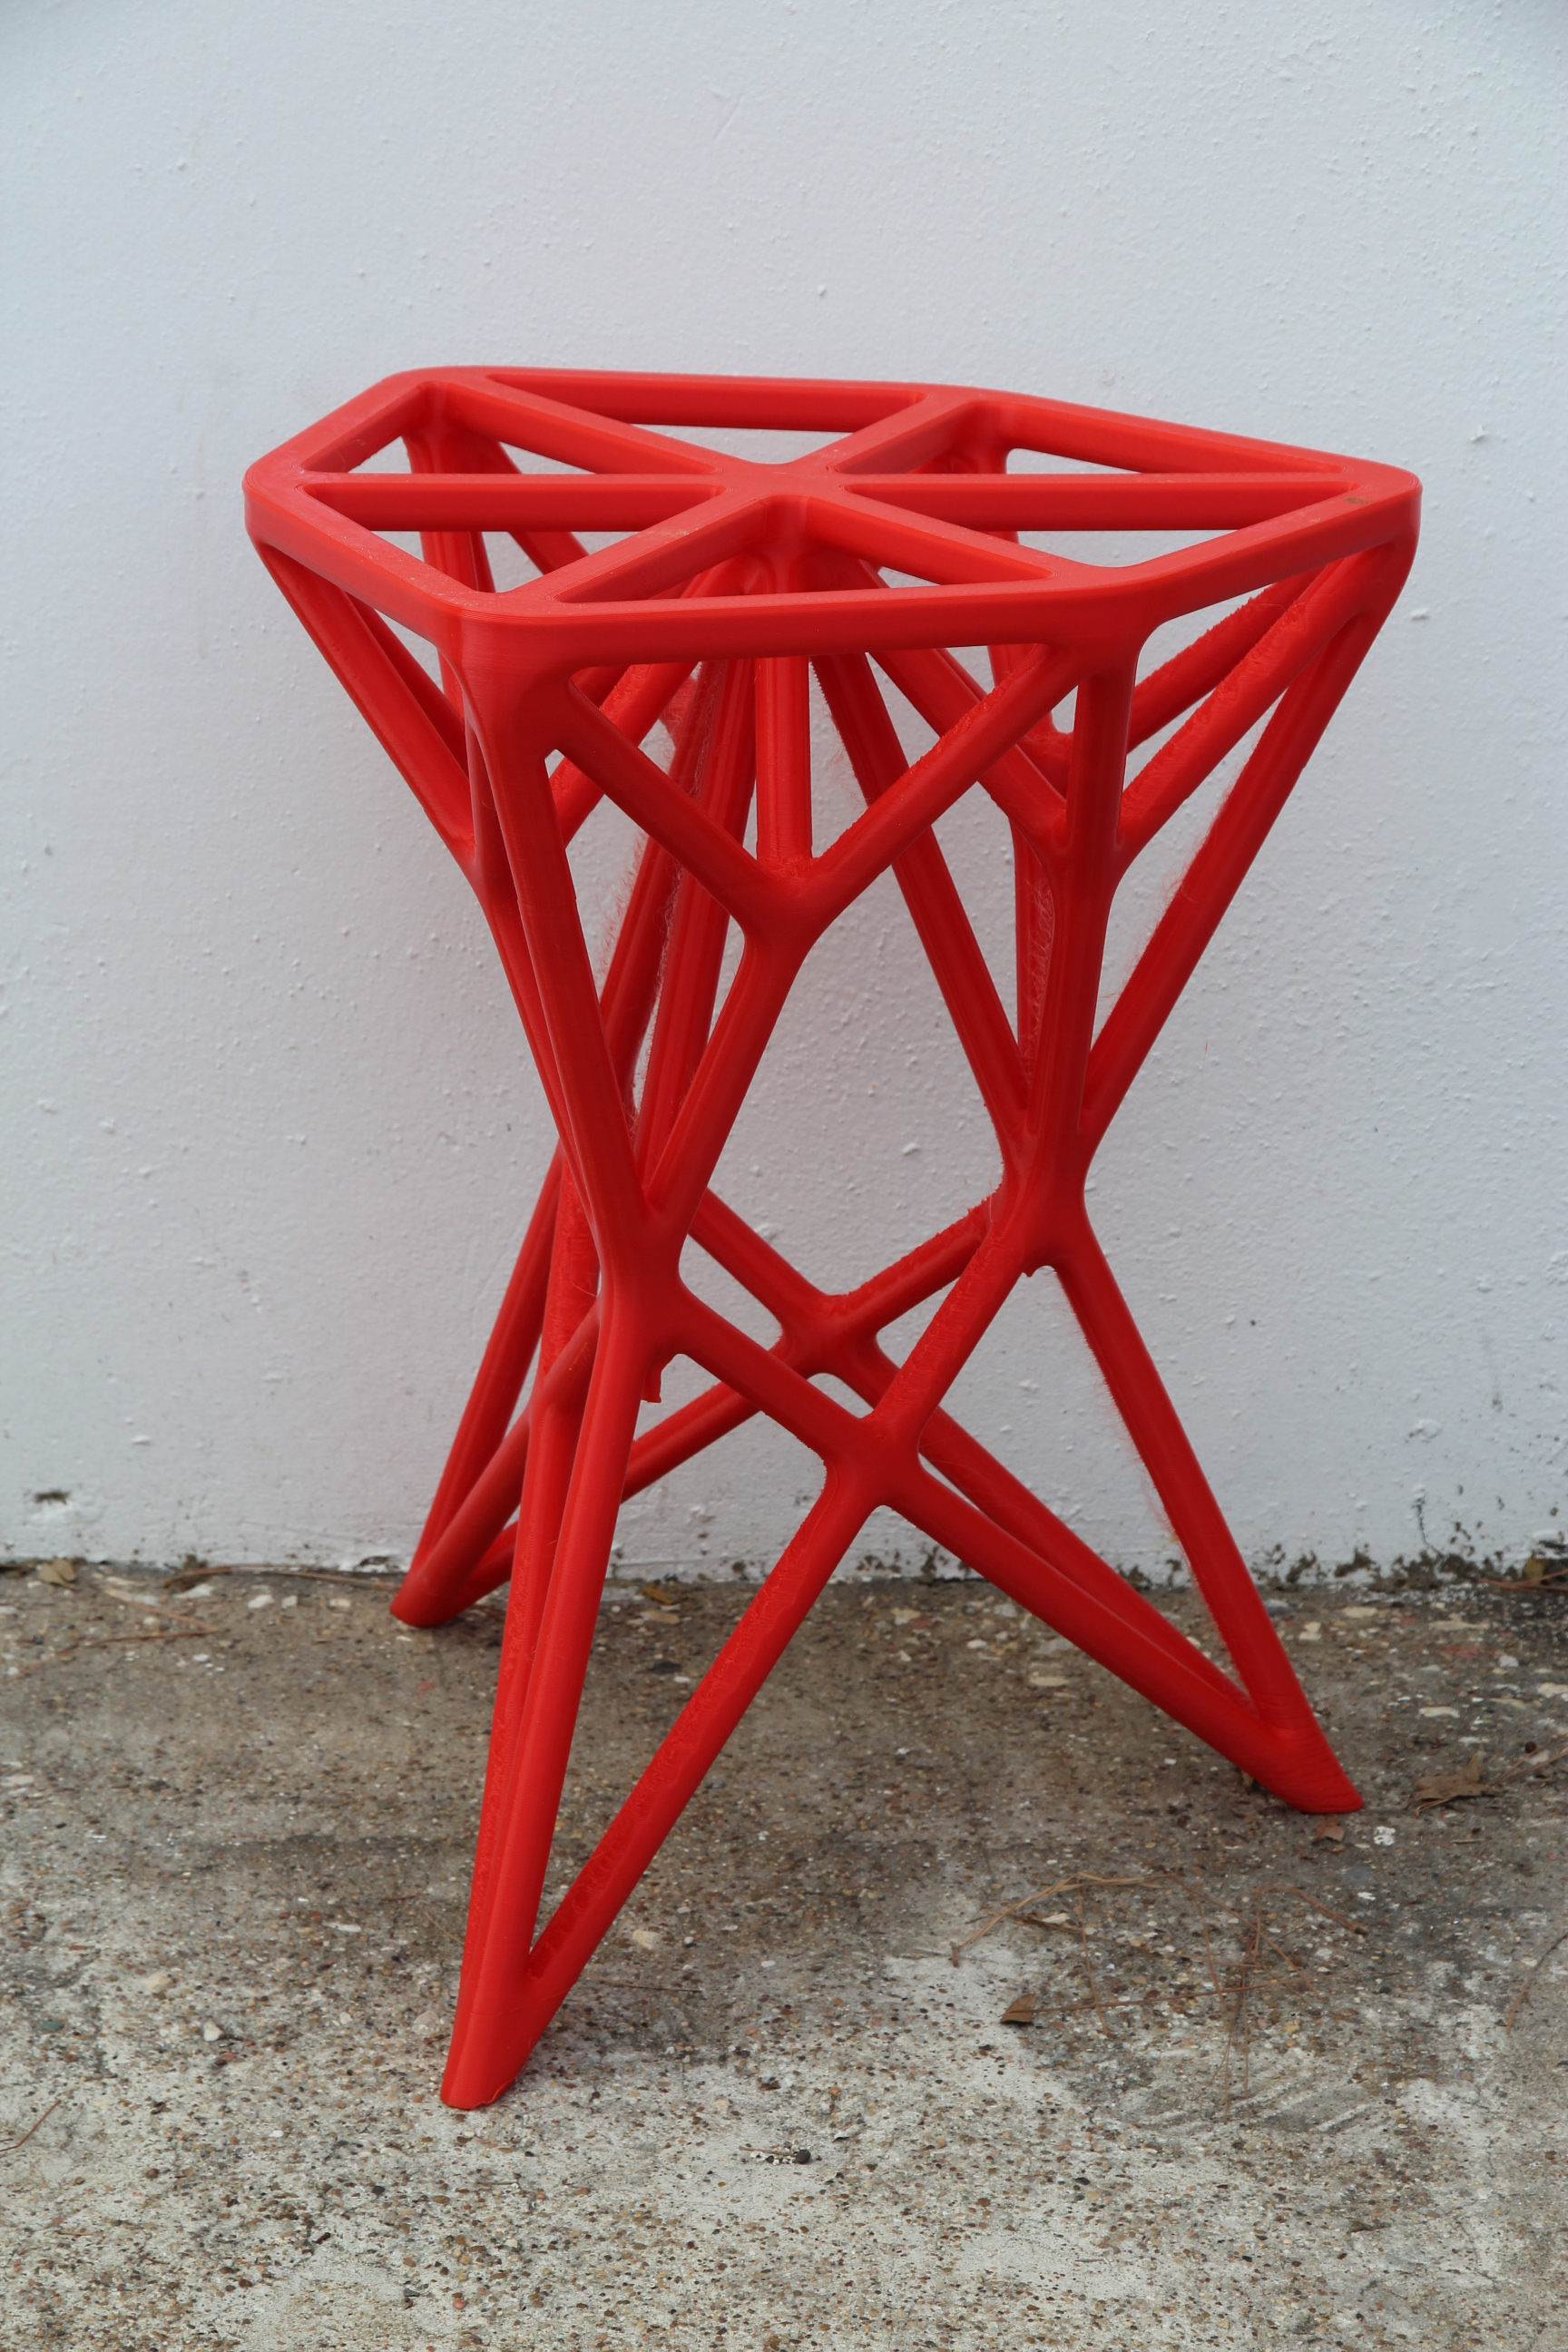 3D Printed Table $400